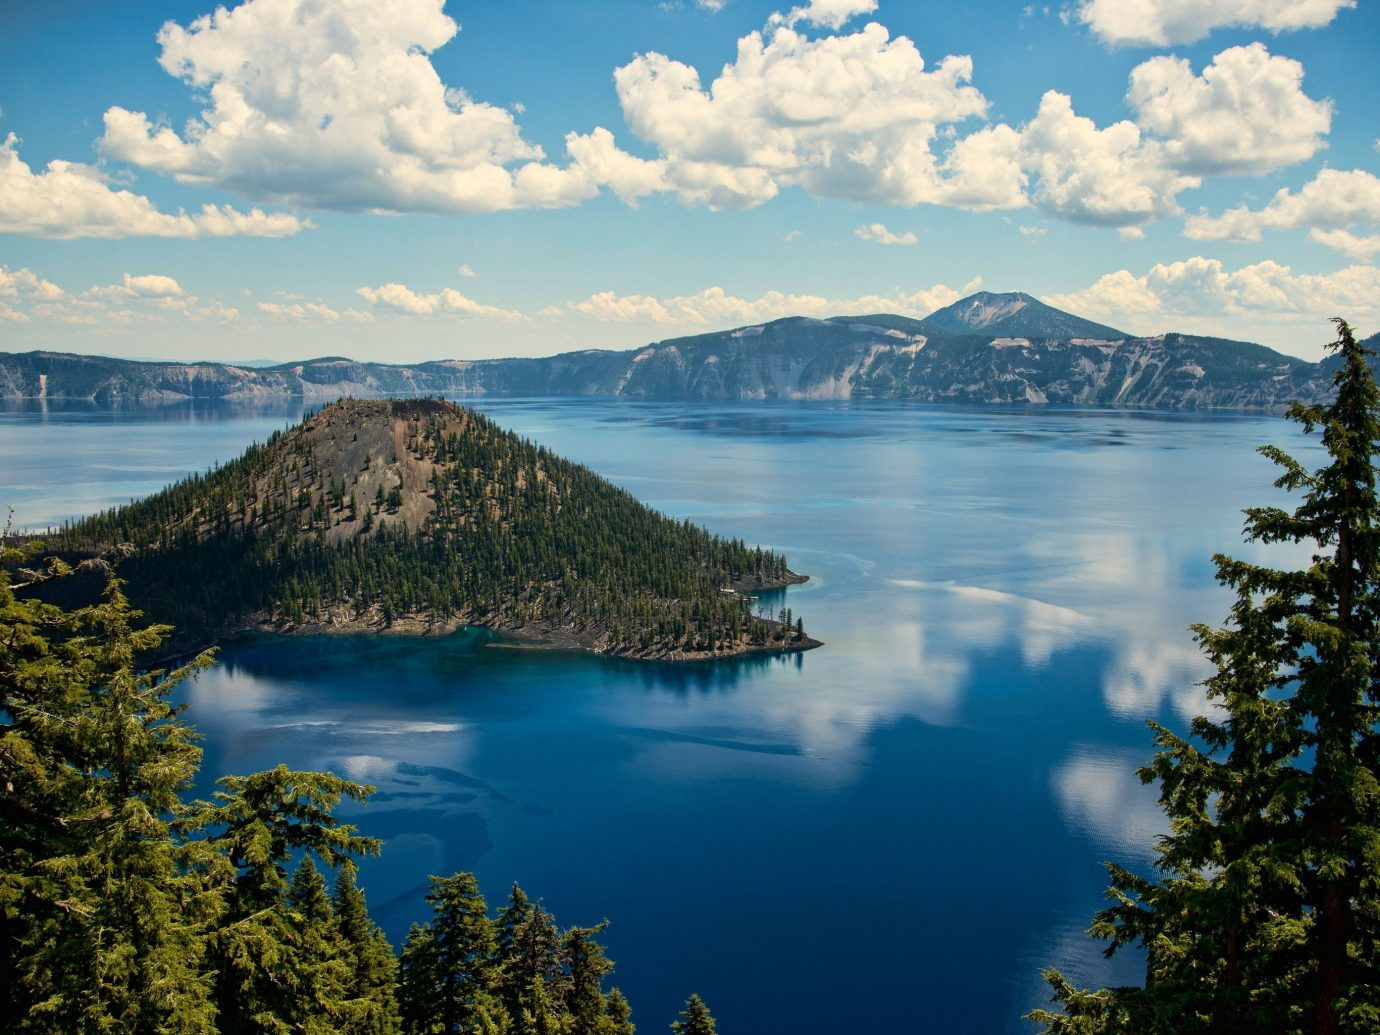 National Parks Outdoors + Adventure Trip Ideas water tree sky outdoor highland Nature Lake mountainous landforms reflection mountain body of water wilderness loch cloud reservoir tarn clouds crater lake fell landscape mountain range fjord Sea surrounded cloudy beautiful shore overlooking Forest hillside day